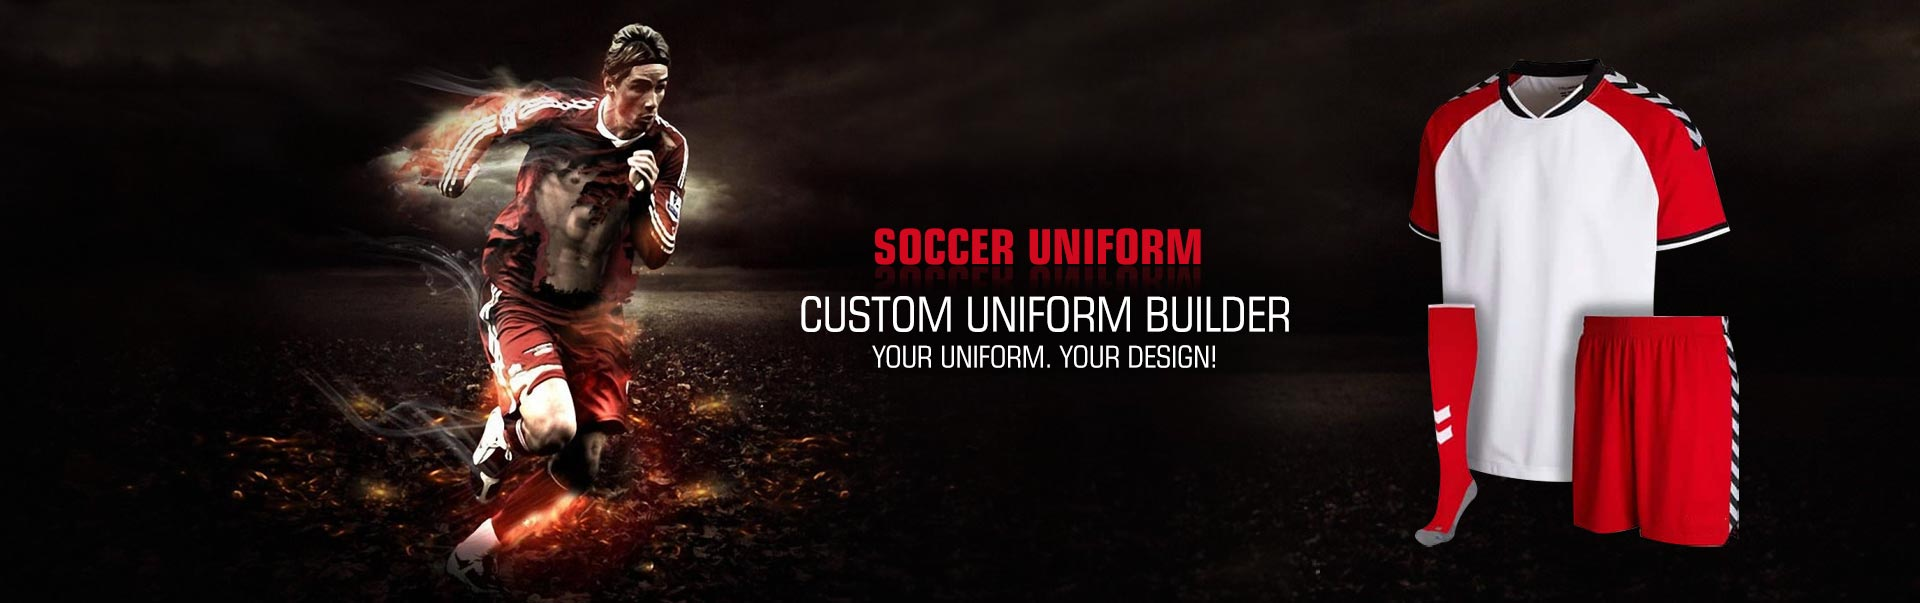 Soccer Uniform Wholesaler, Suppliers in Arlington